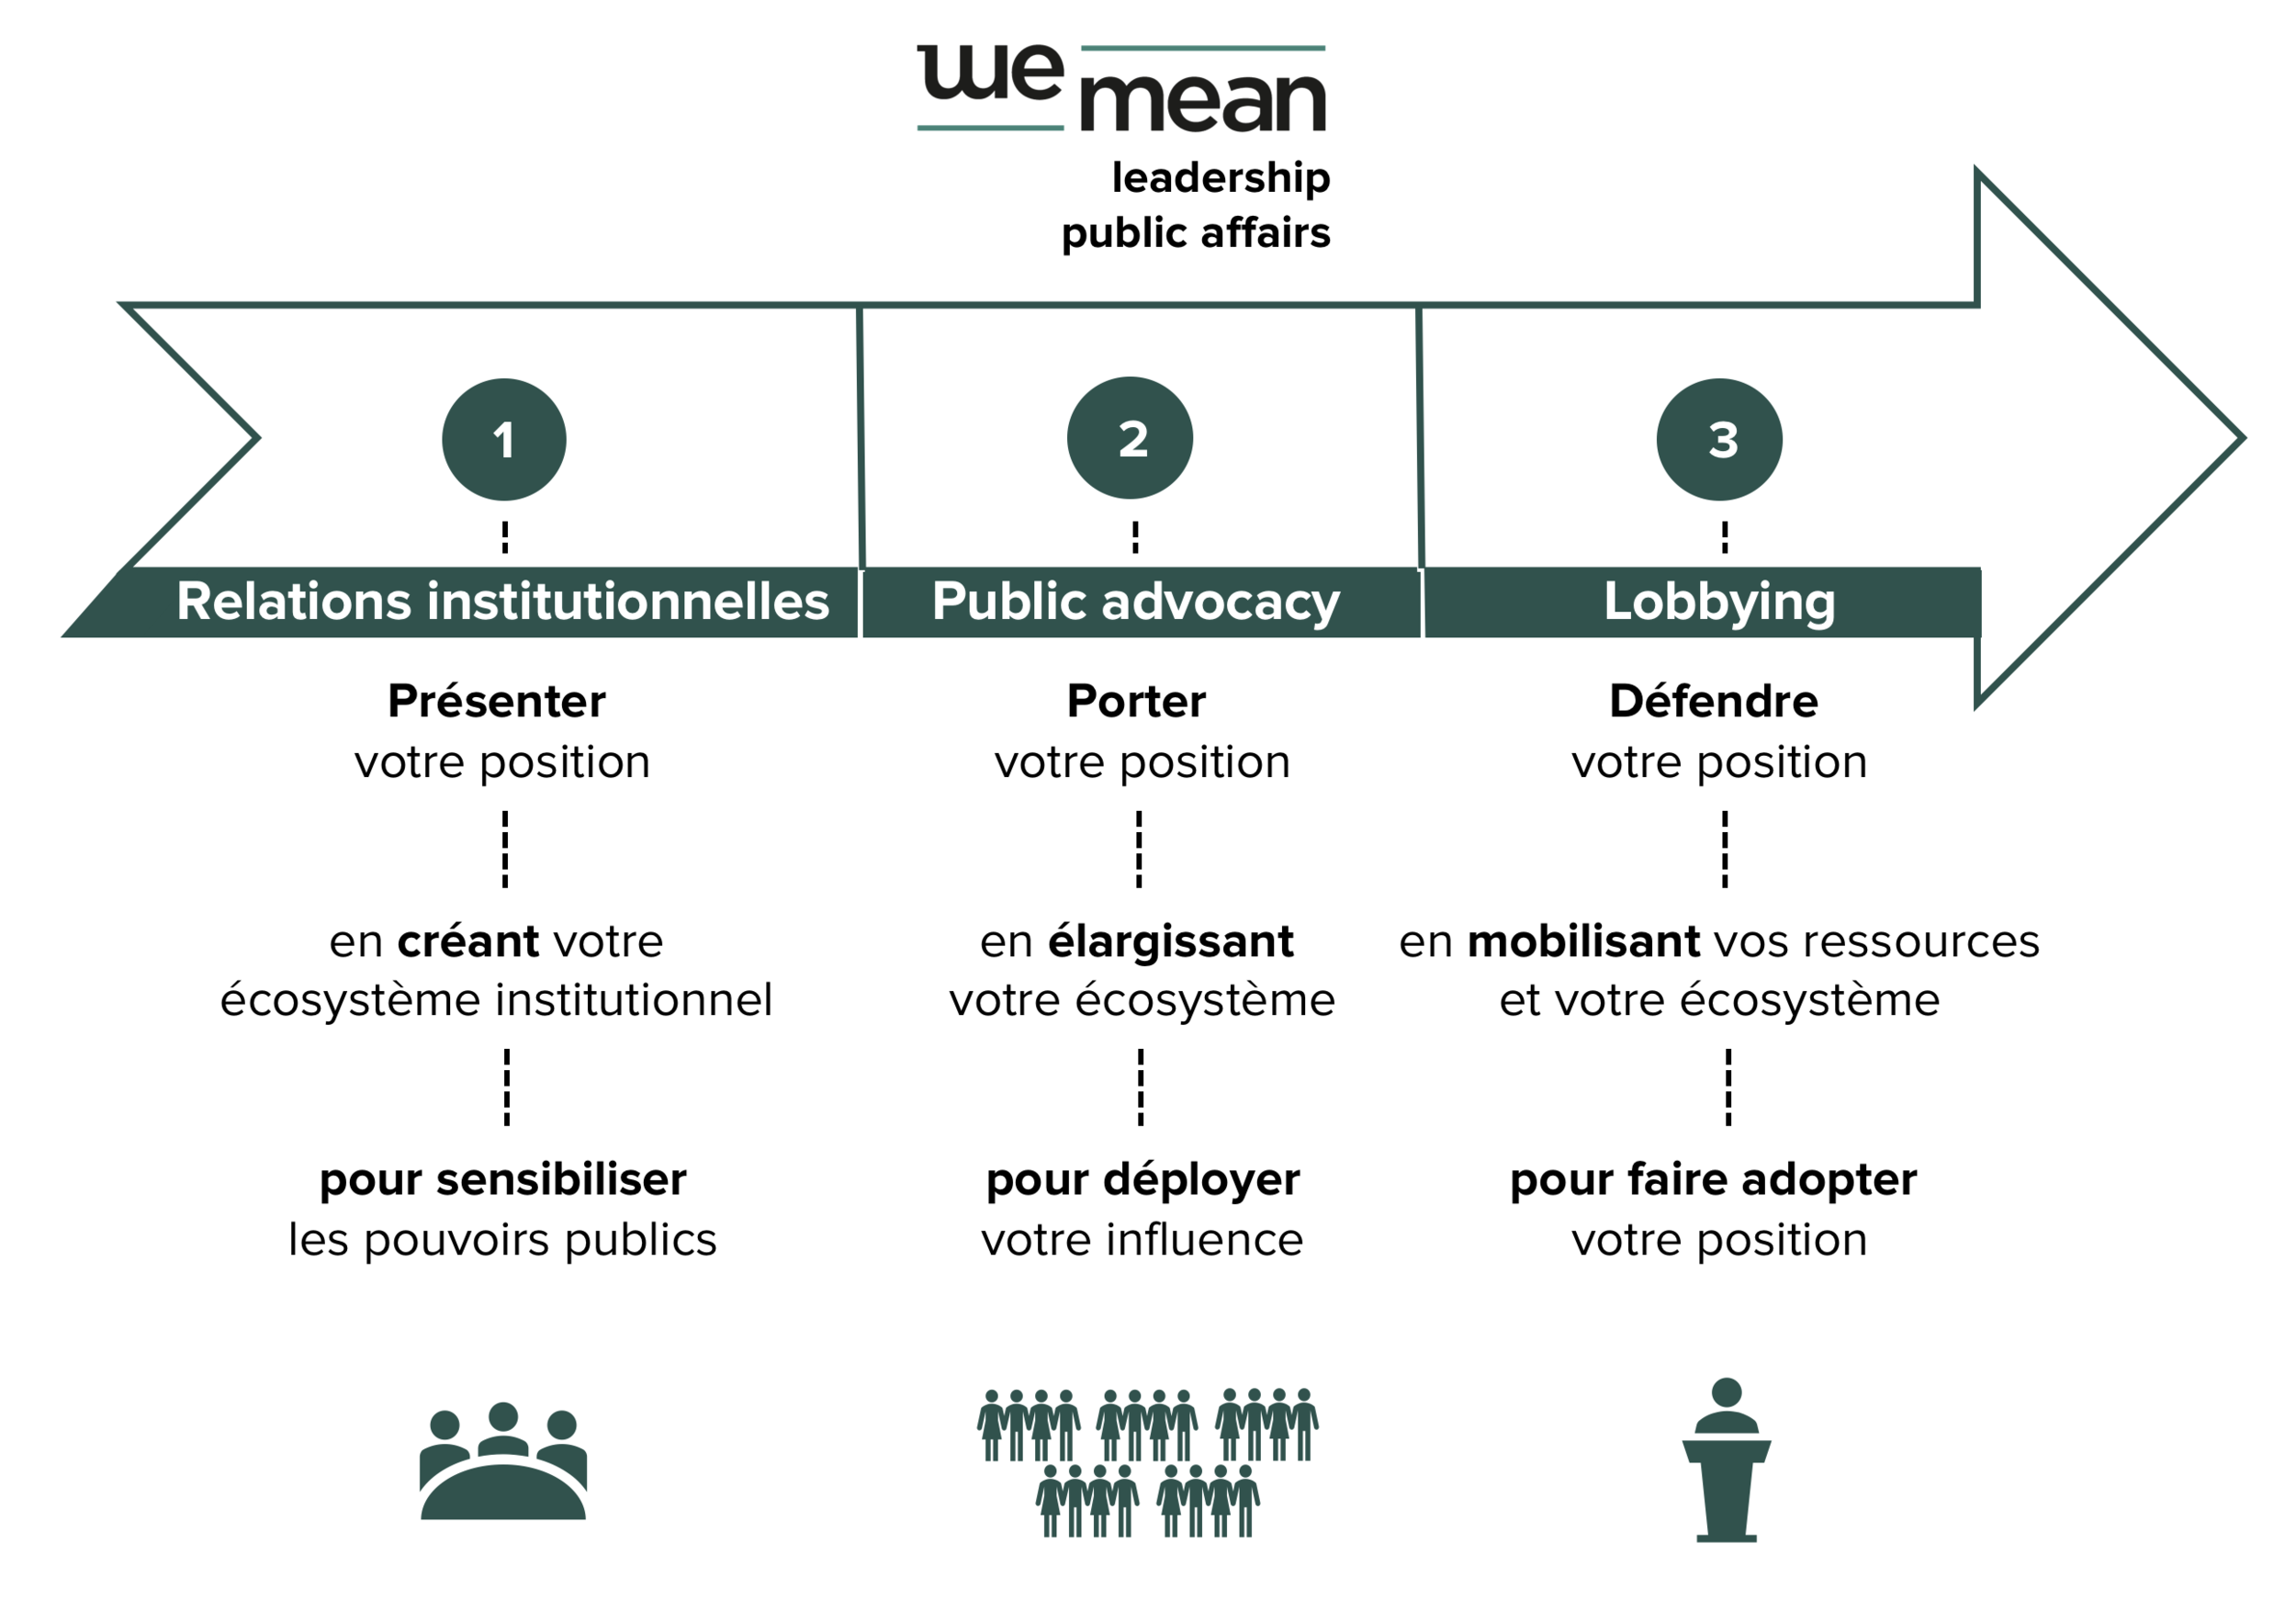 WEMEAN_Leadership_communication_public_affairs_expertise_transparence_territoires_1.png